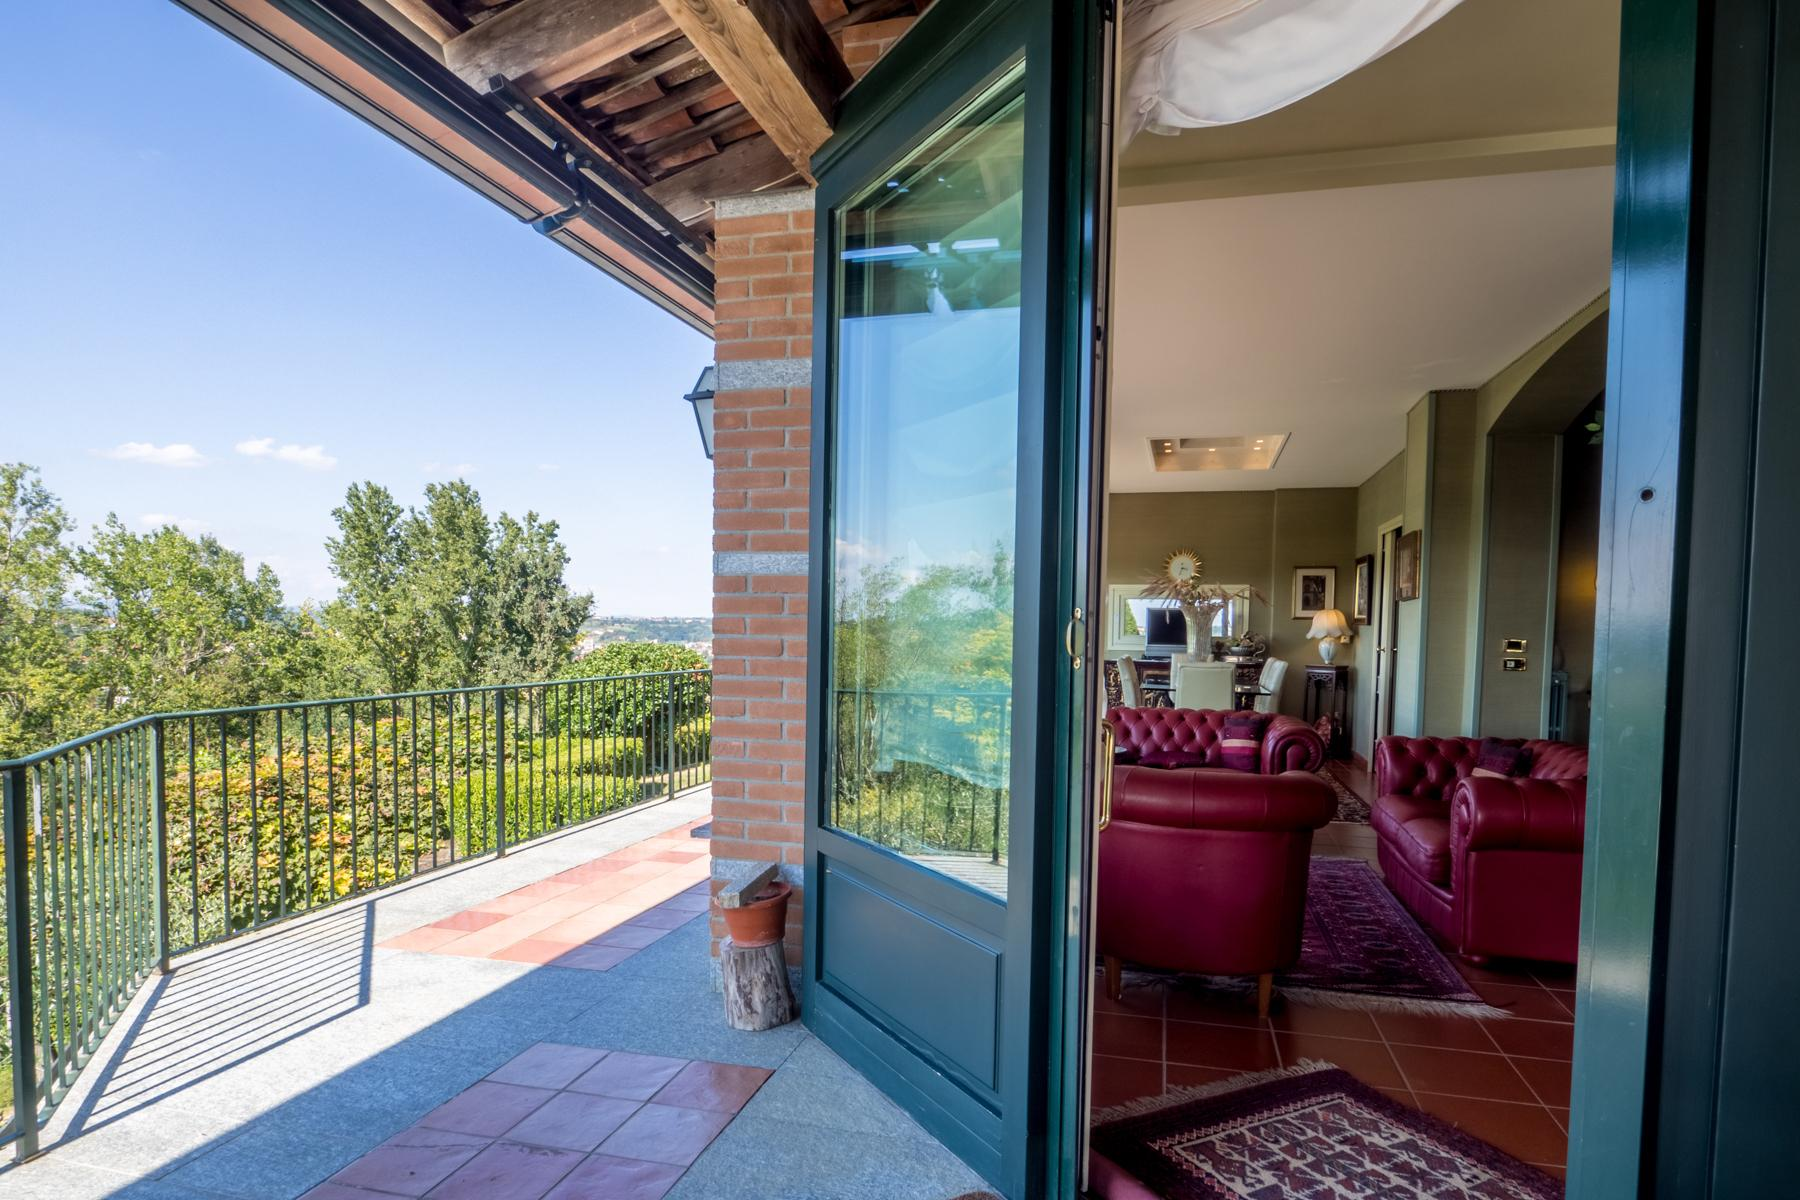 Wonderful modern villa on the hills of Monferrato - 9